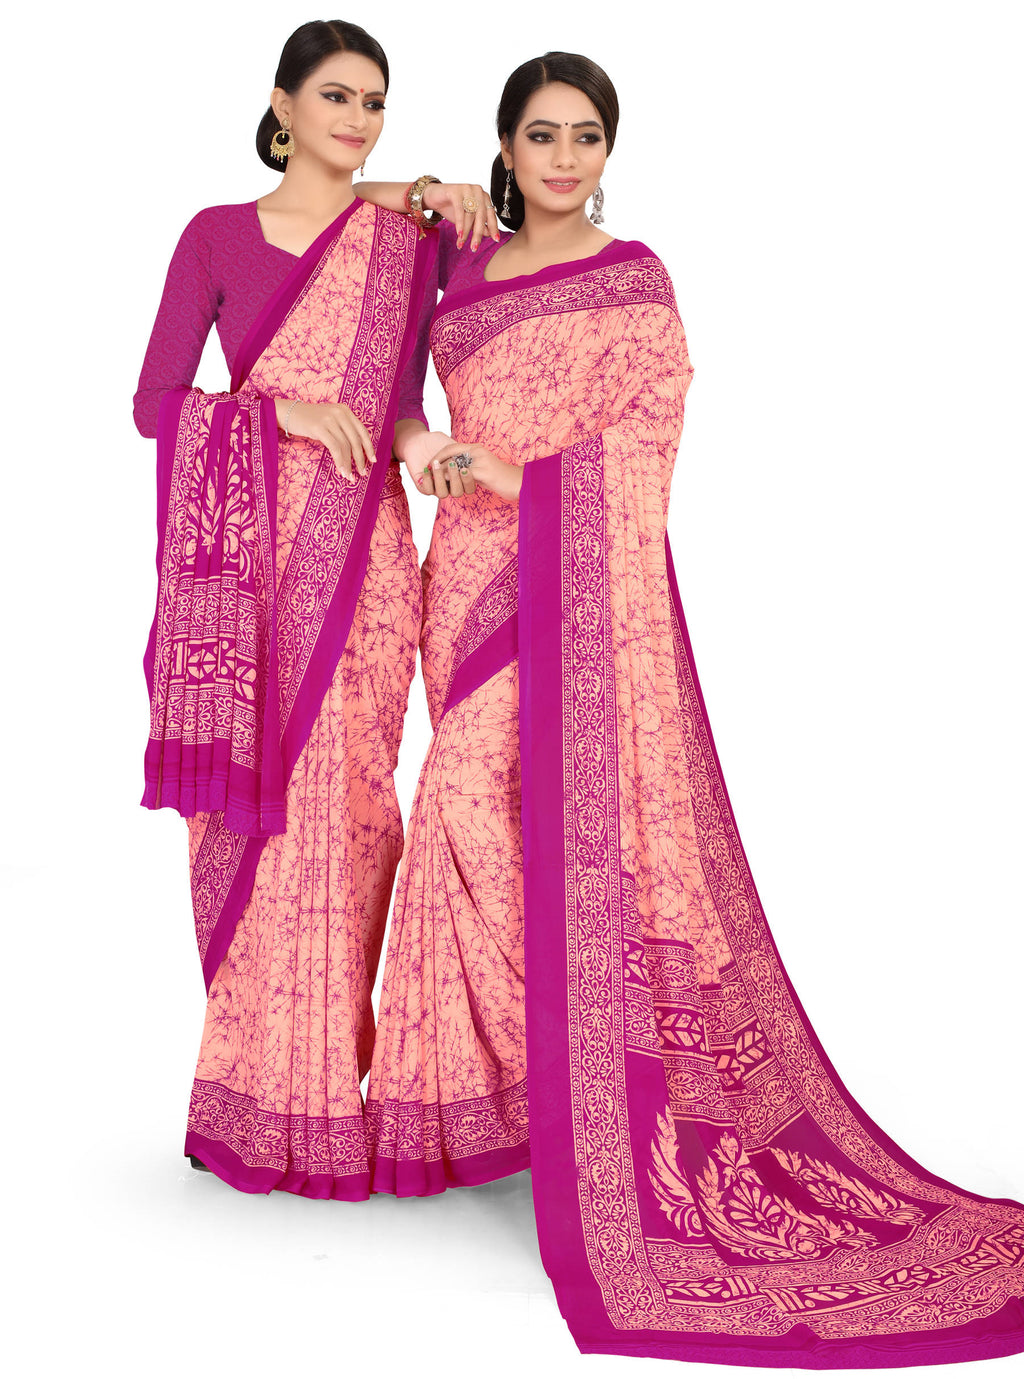 Peach & Pink Color Crepe Chiffon Daily Wear Printed Sarees NYF-7775